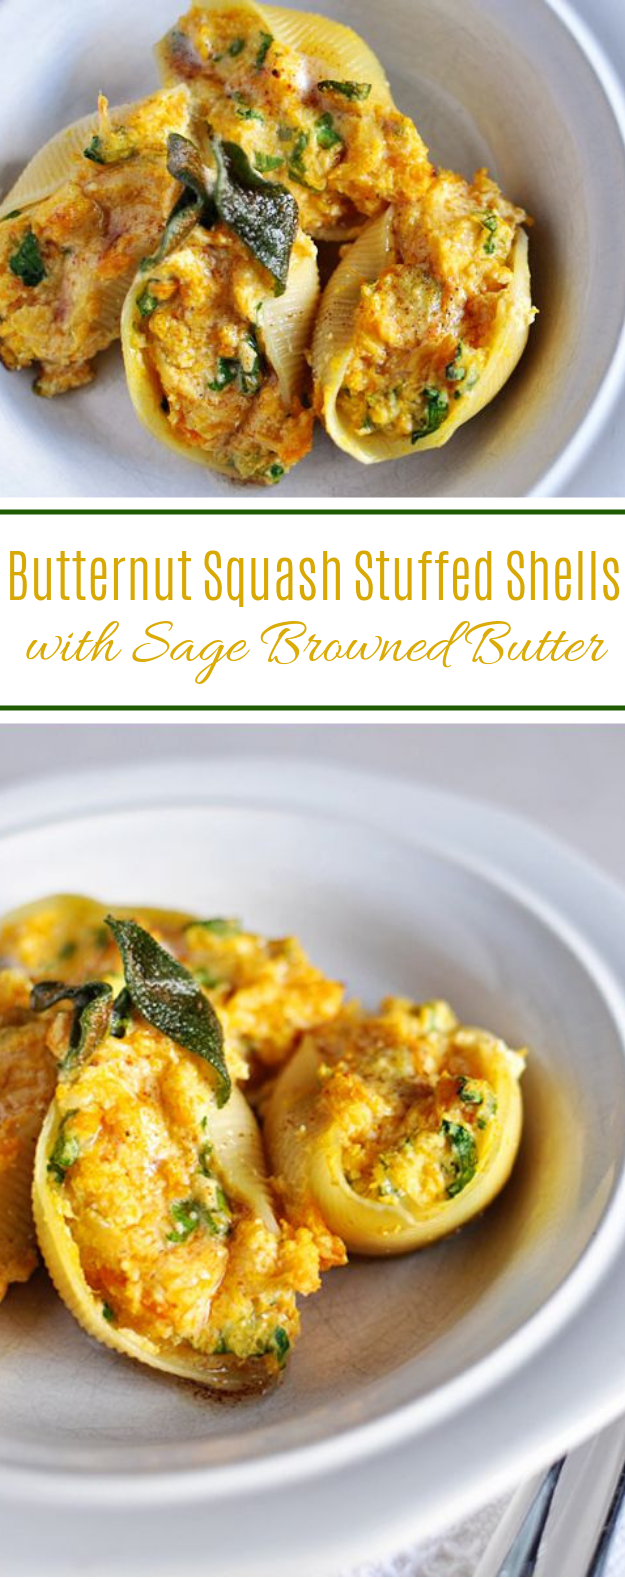 Butternut Squash Stuffed Shells with Sage Browned Butter #dinner #vegan